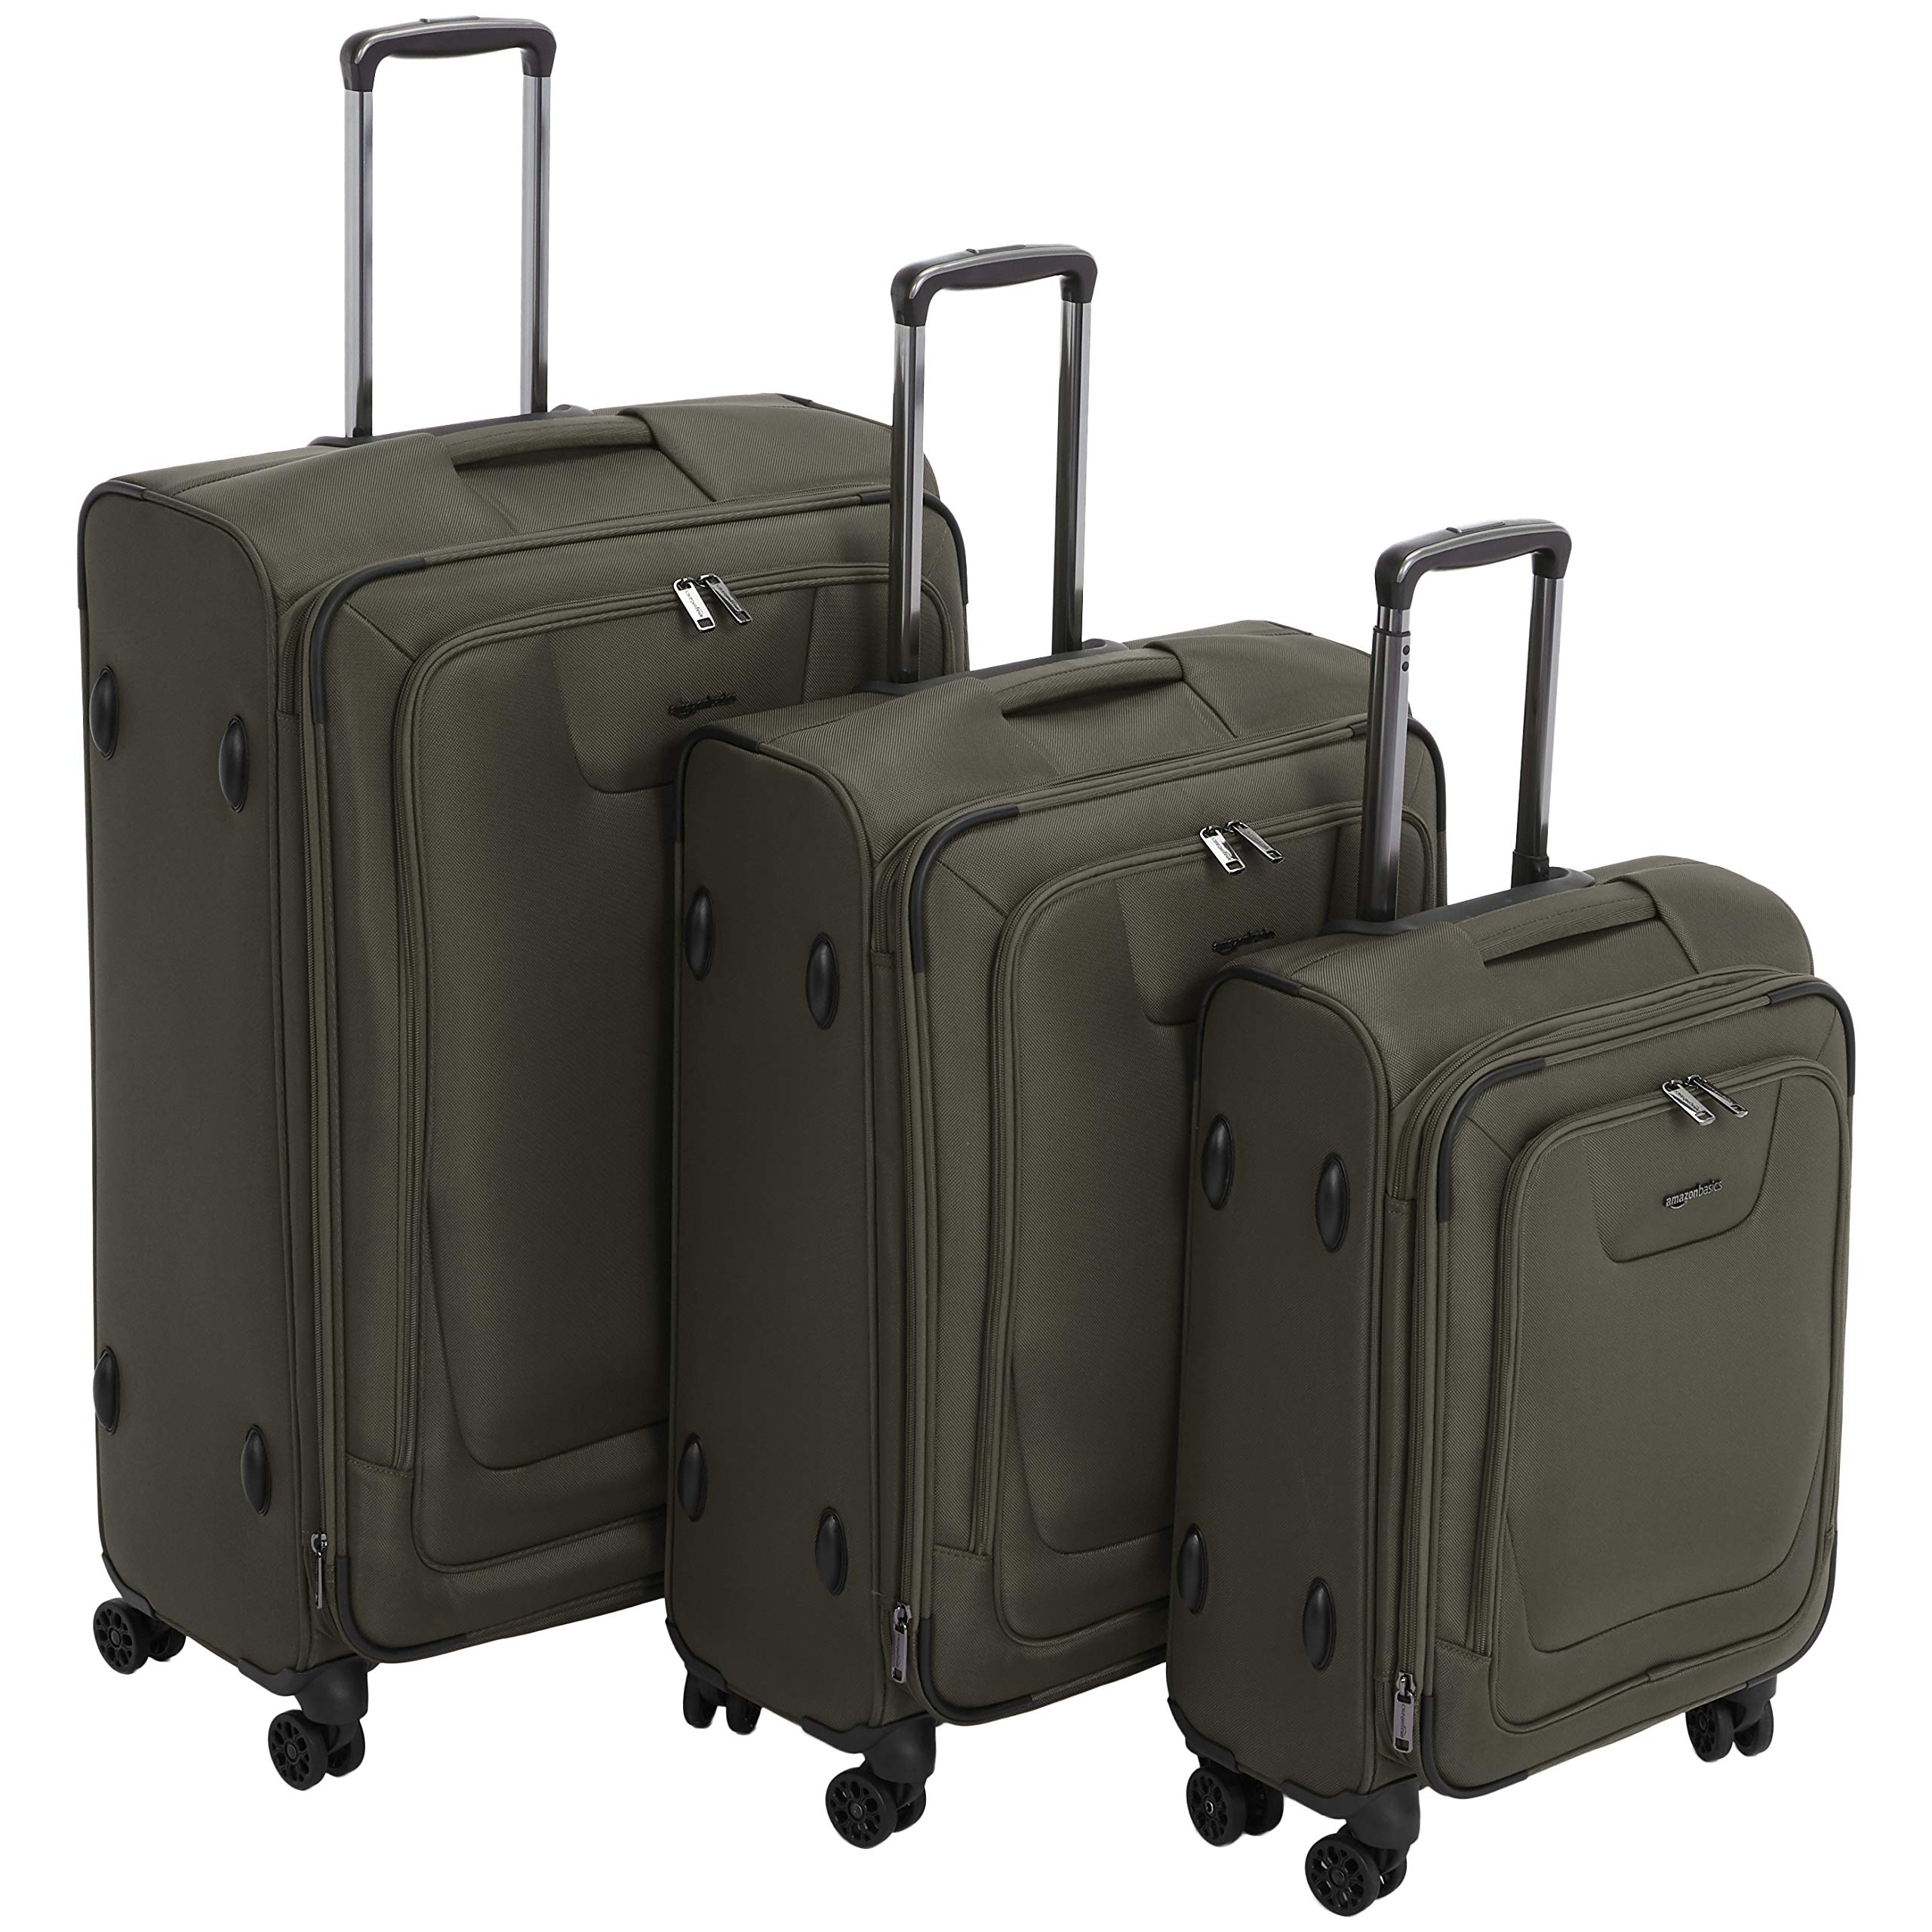 AmazonBasics Premium Expandable Softside Spinner Luggage With TSA Lock 3-Piece Set - 21/25/29-Inch, Olive